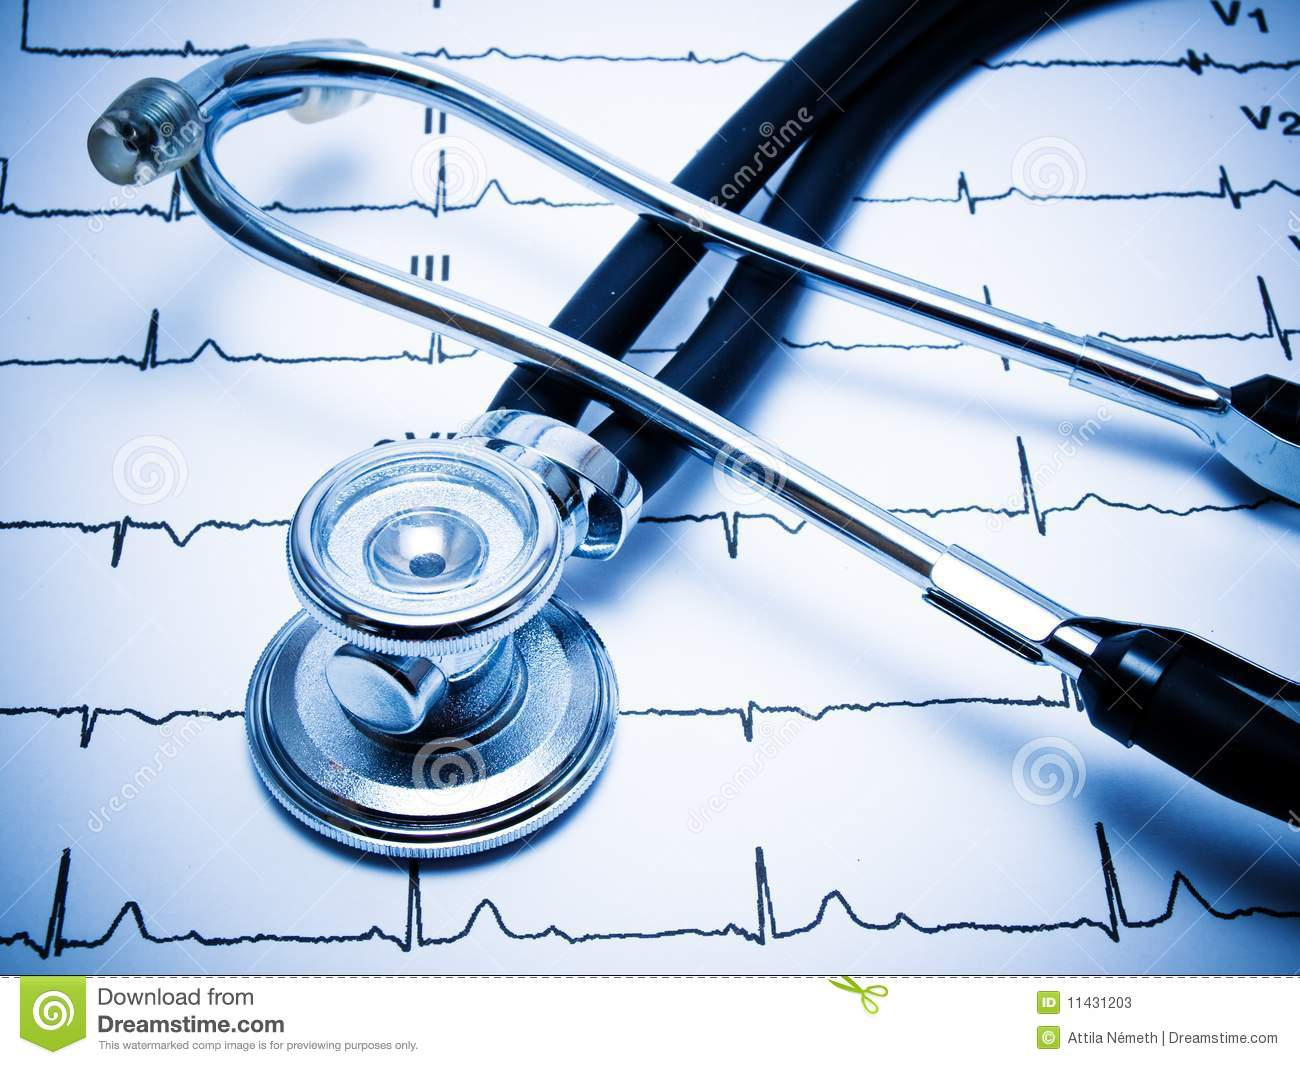 http://www.dreamstime.com/stock-photos-stethoscope-ecg-chart-image11431203